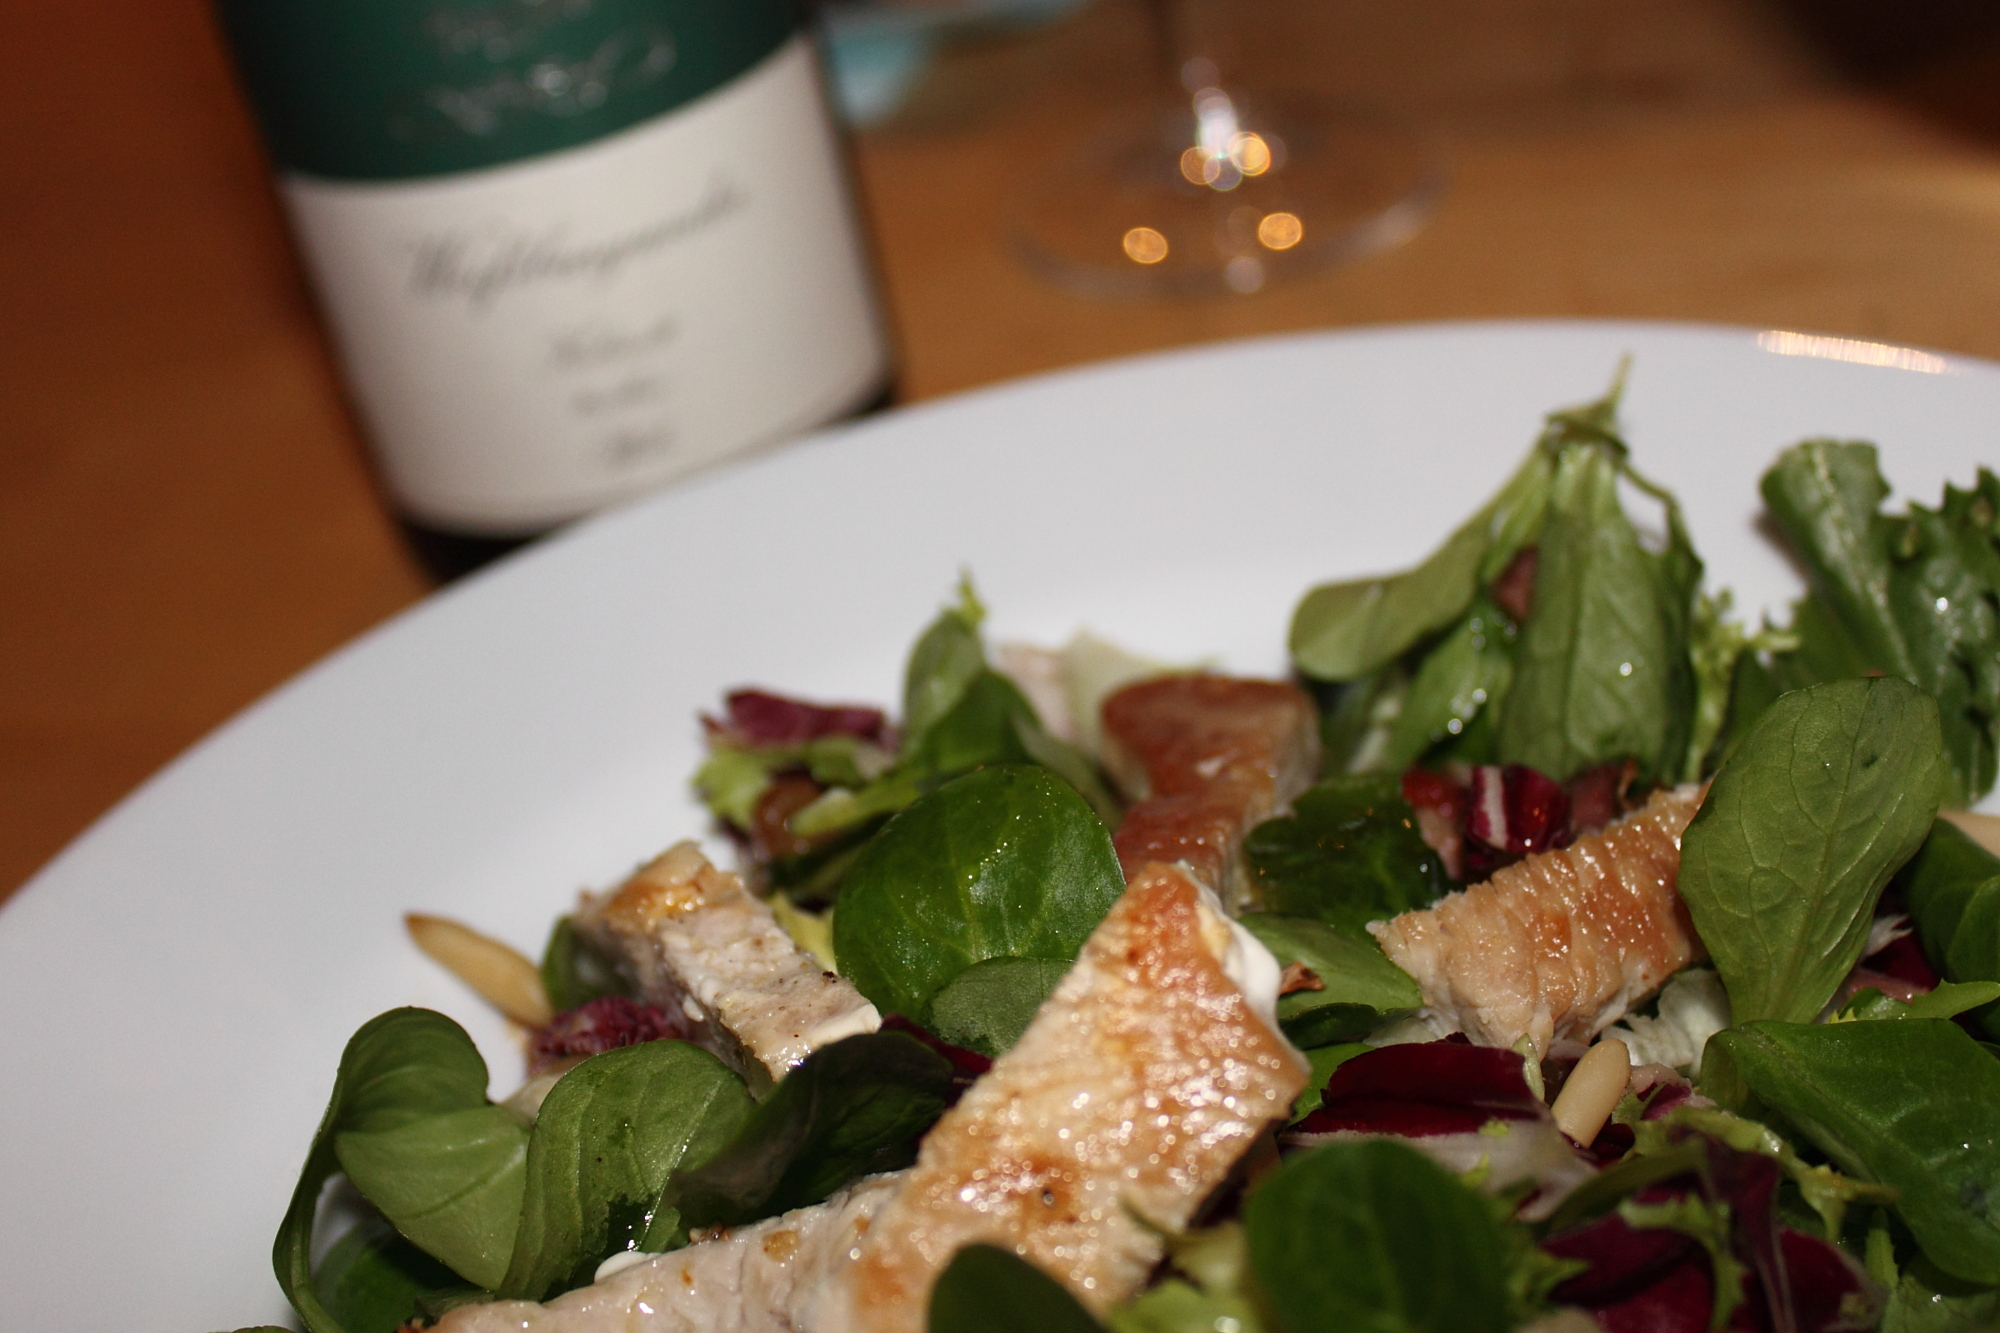 At your service, salad! Pinot Blanc, the discreet background companion